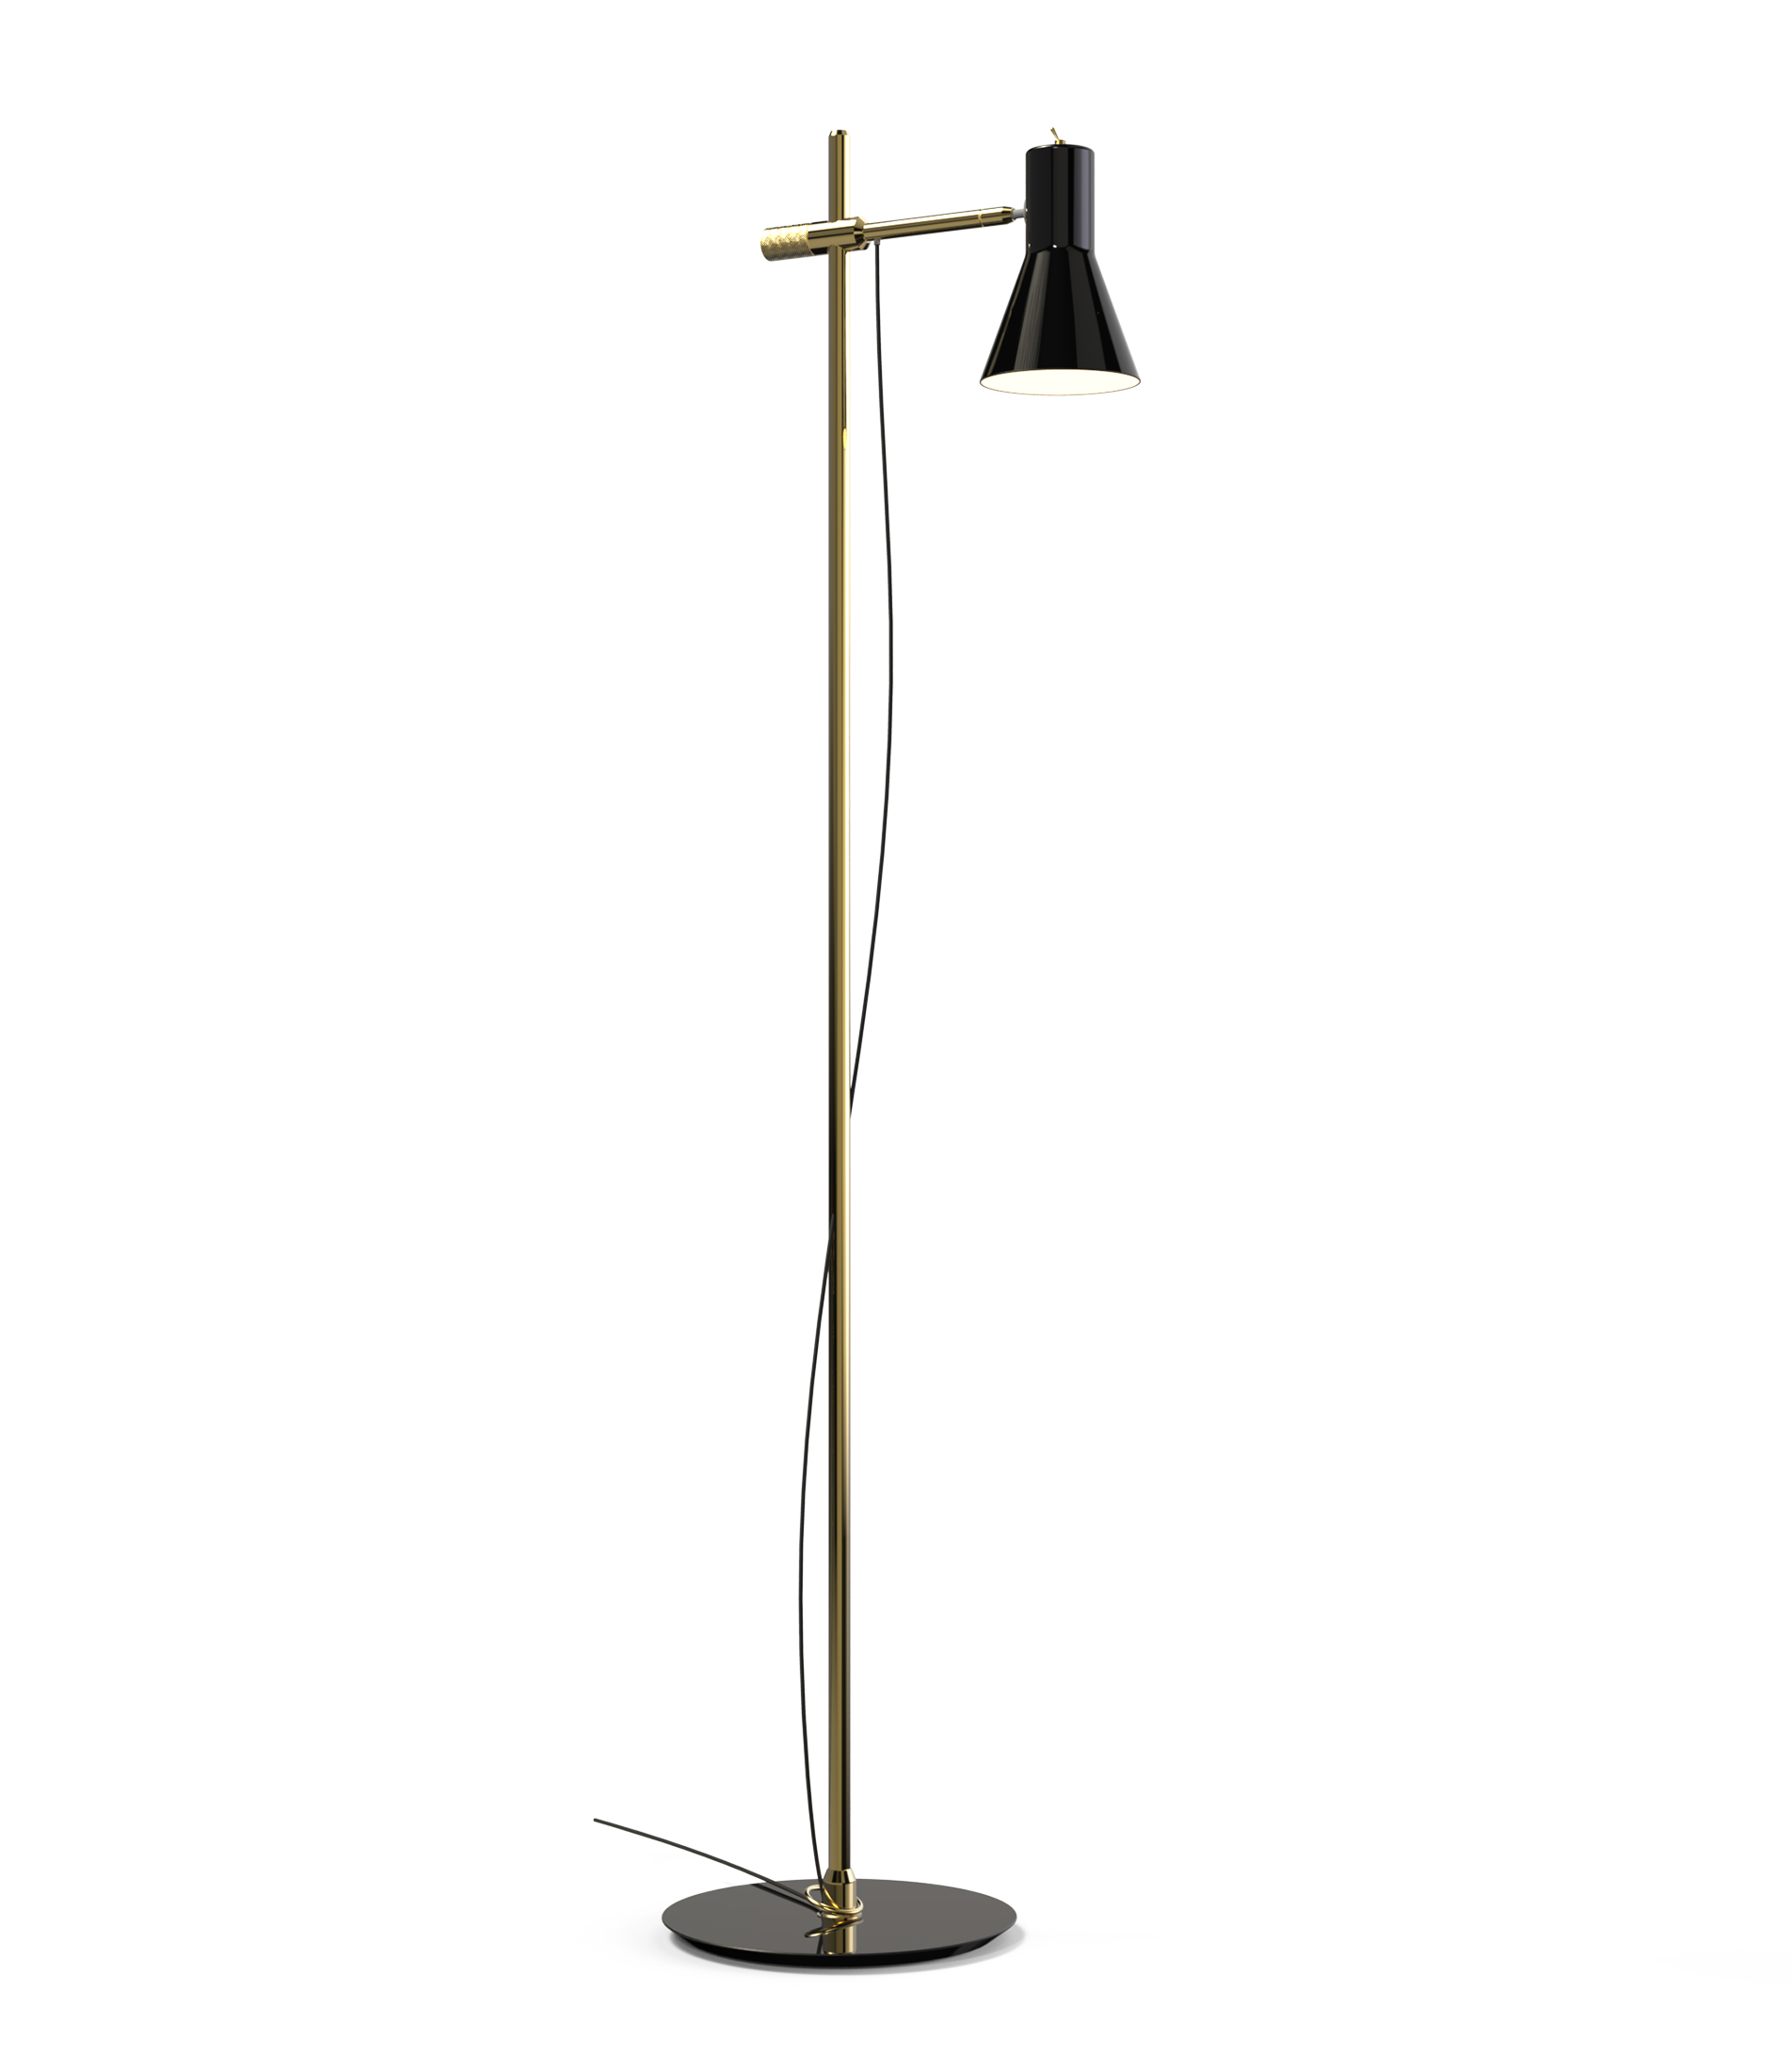 modern floor lamps modern floor lamps Floor Samples Has Brand-New Modern Floor Lamps! Floor Samples Has Brand New Modern Floor Lamps 4